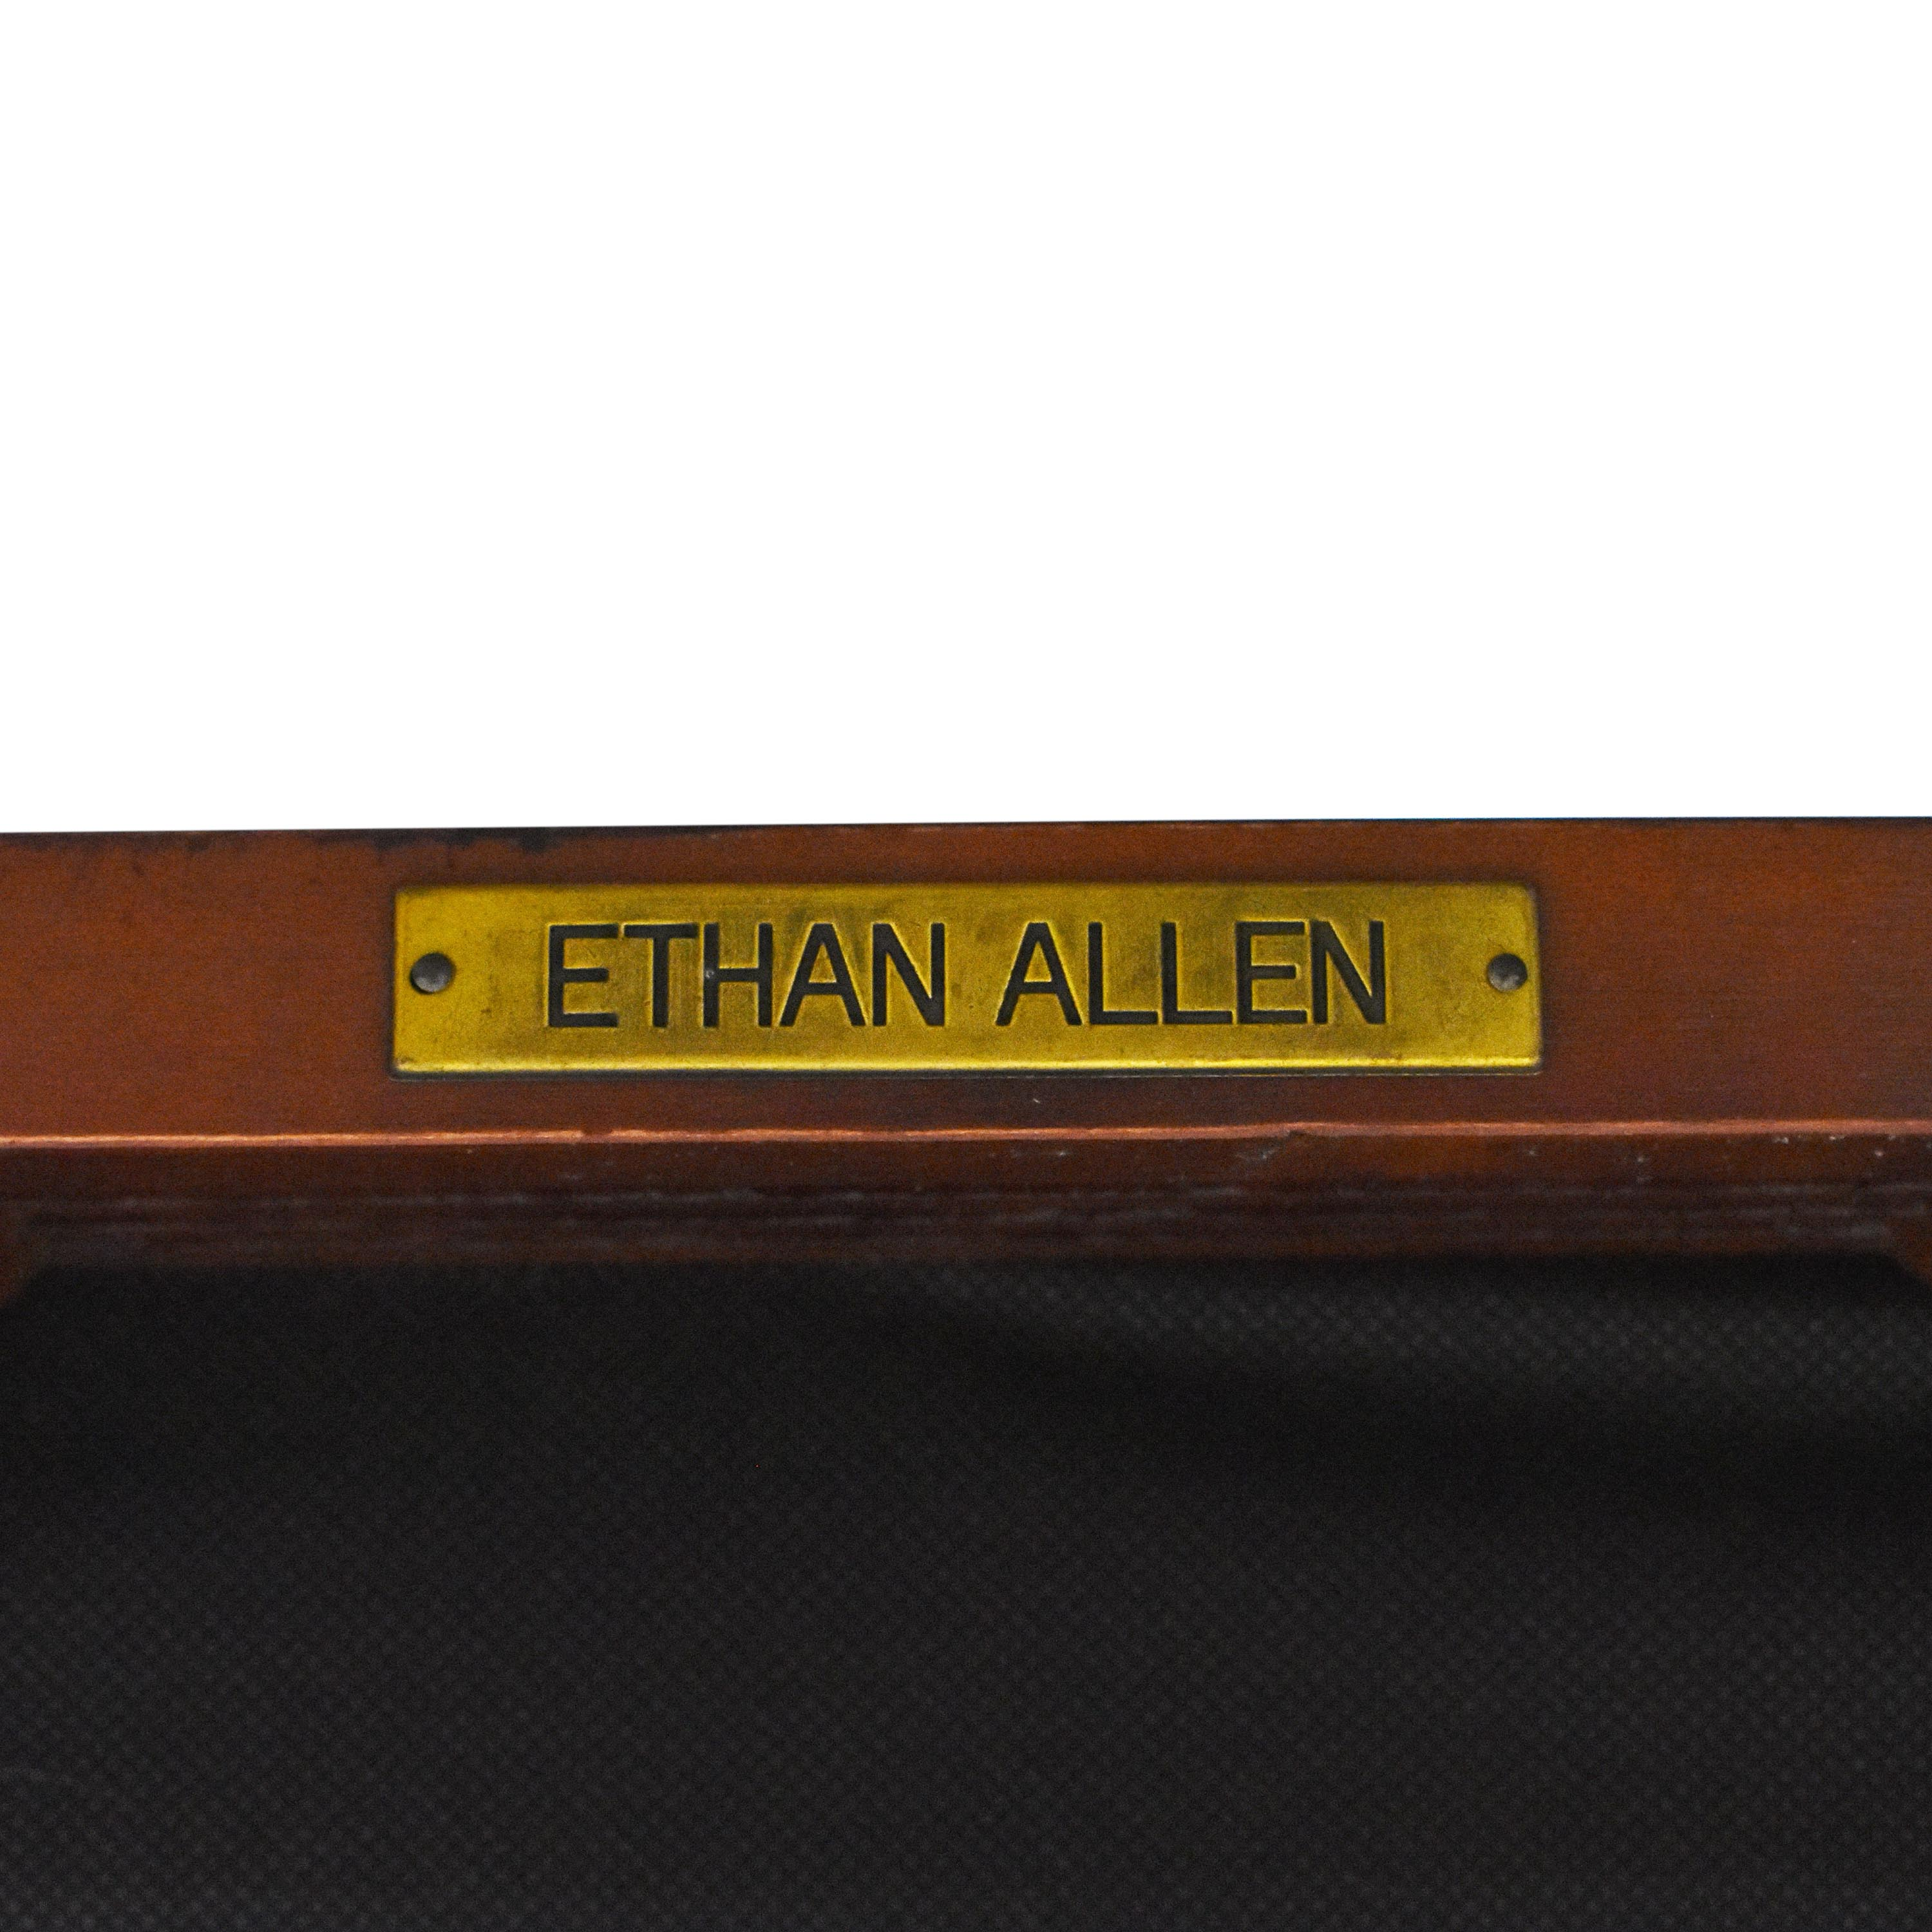 Ethan Allen Ethan Allen British Classics Dining Arm Chairs price